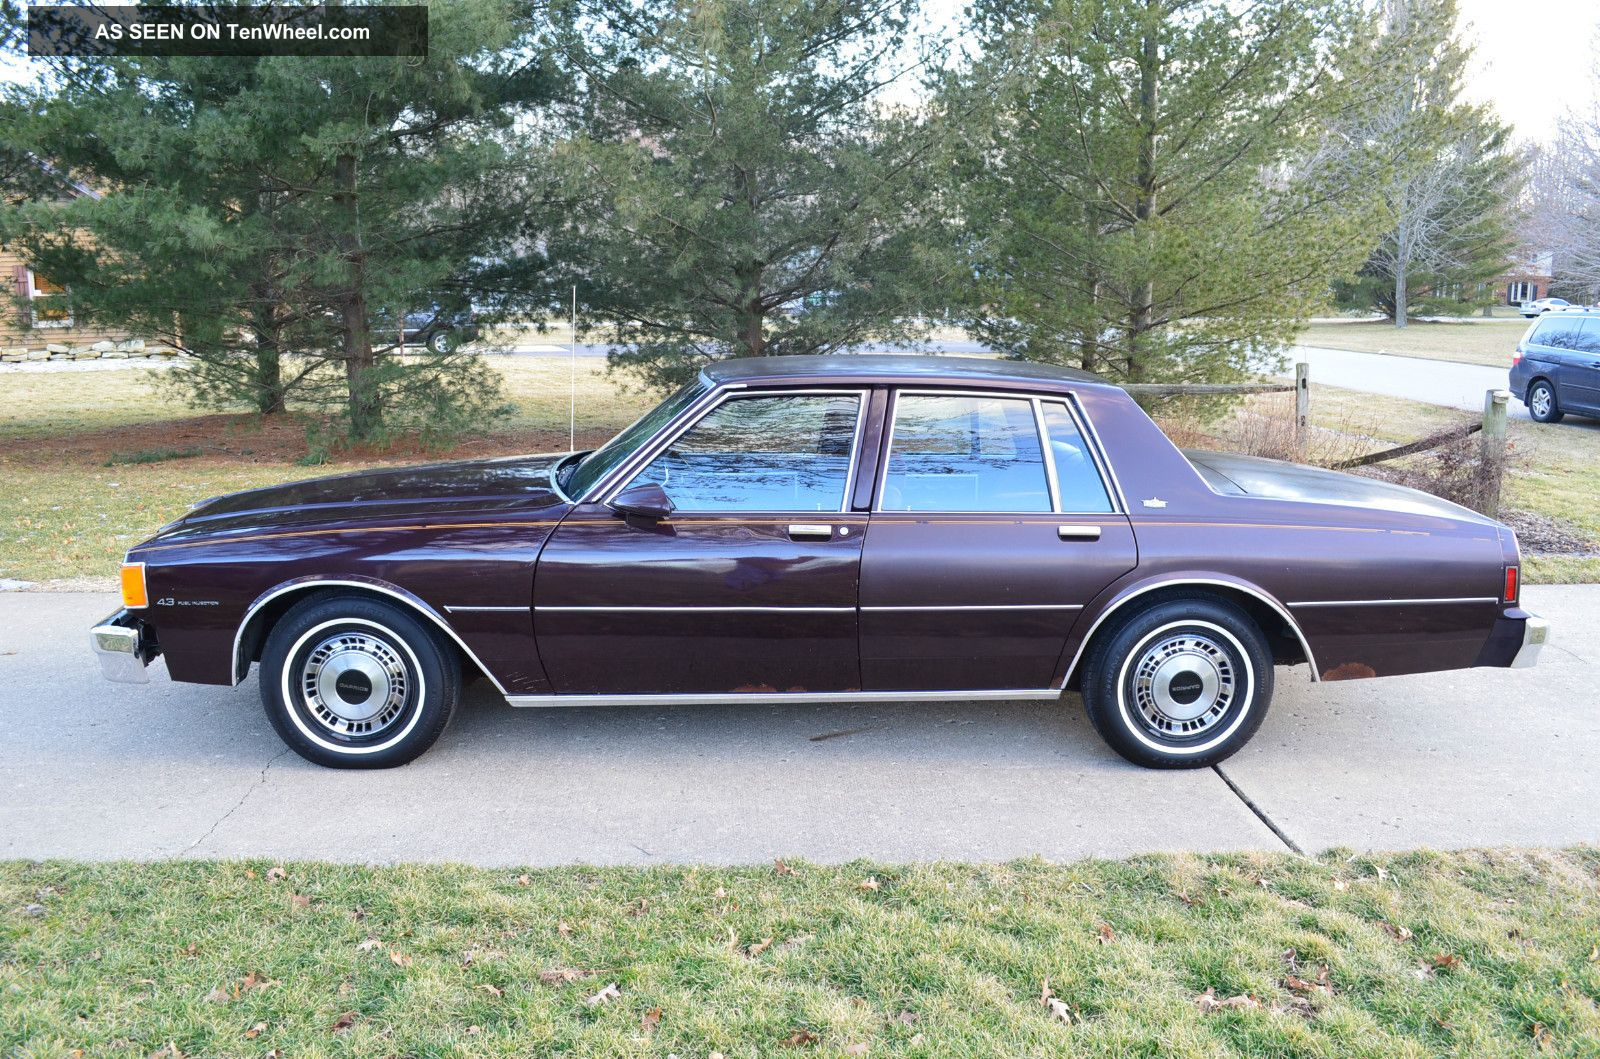 1985 Chevrolet Caprice Classic Sedan 4  Door 4. 3l Caprice photo 1